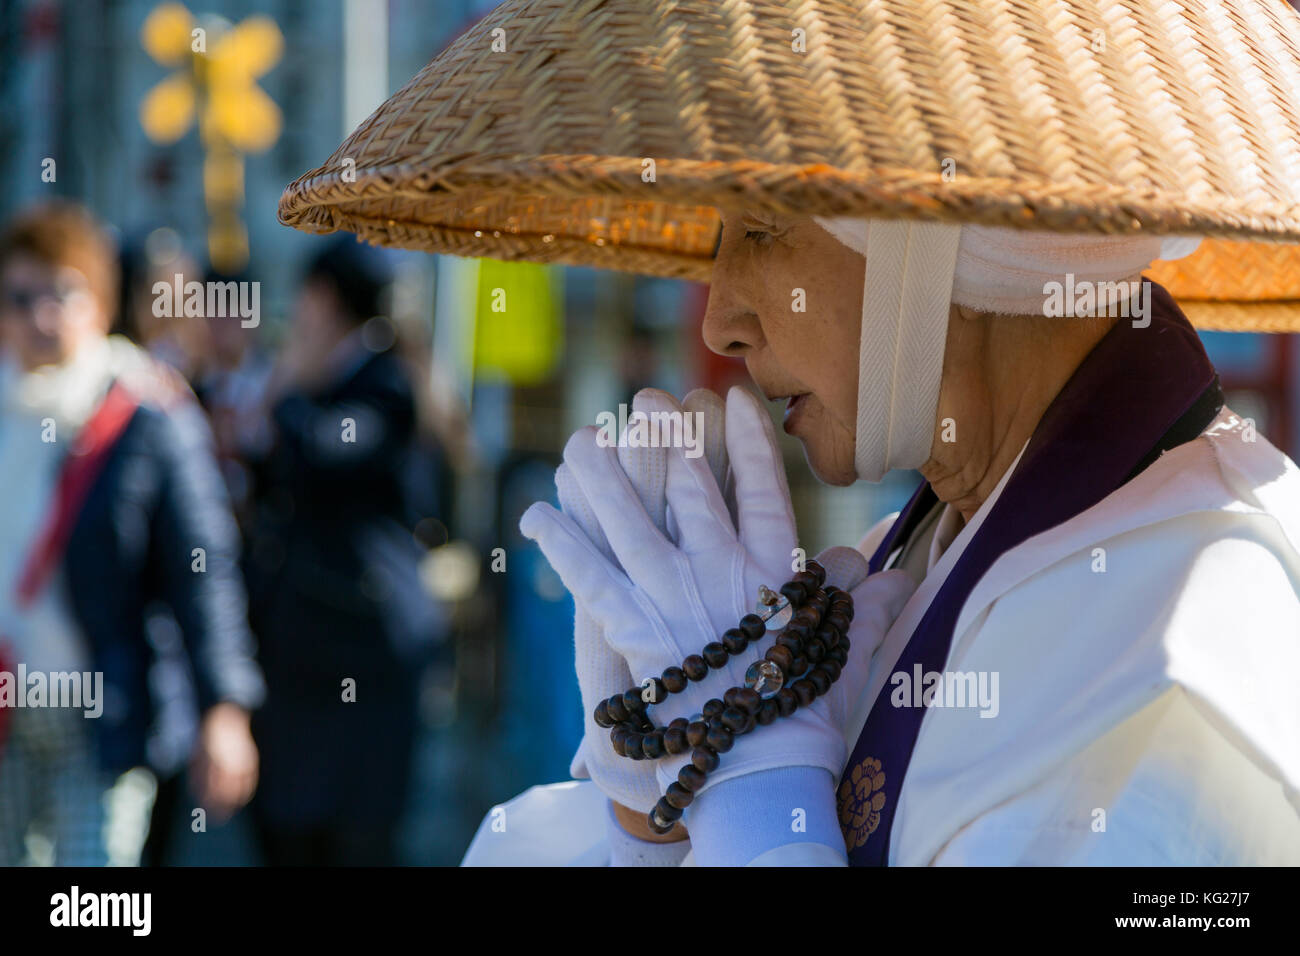 Japanese female Buddhist monk collecting alms at the Kiyomizudera Temple in Kyoto, Japan, Asia Stock Photo